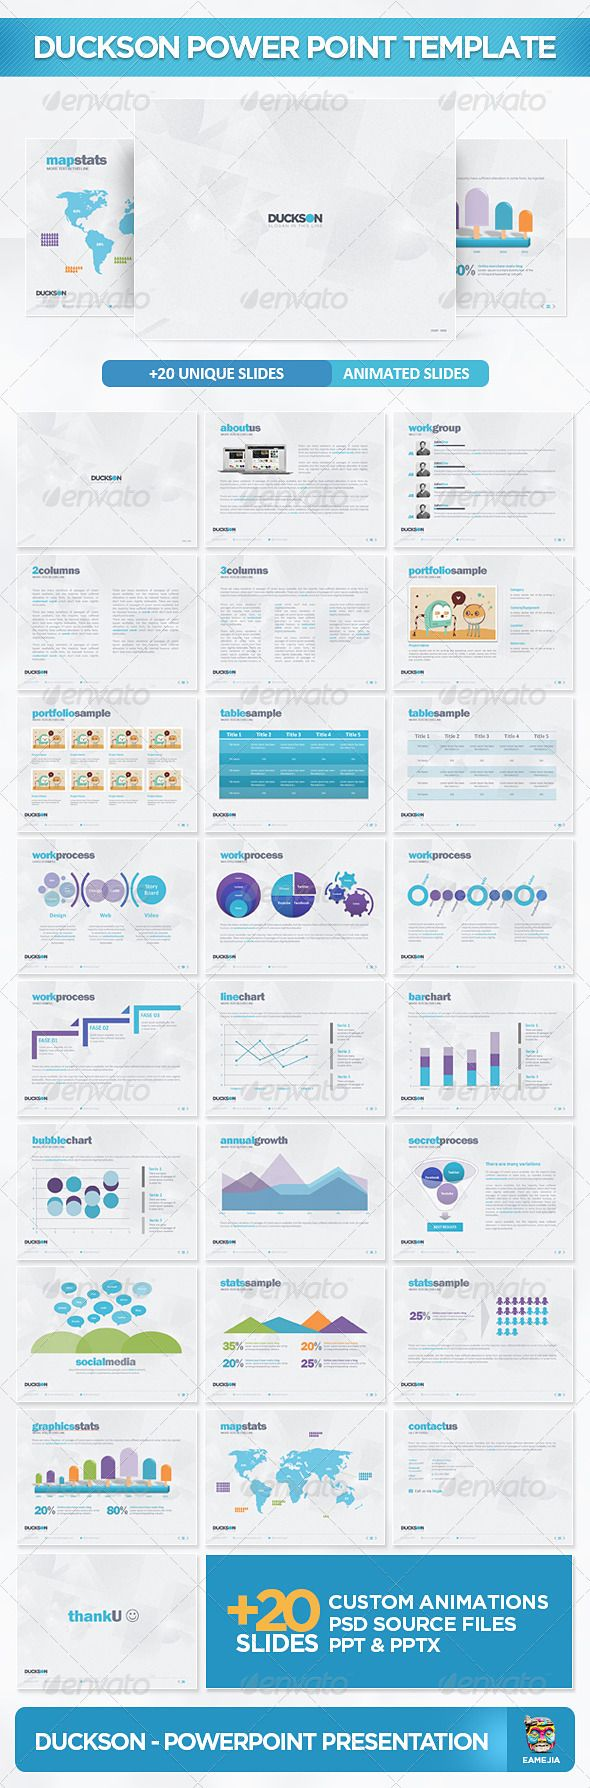 Duckson PowerPoint Presentation Template - GraphicRiver Item for Sale